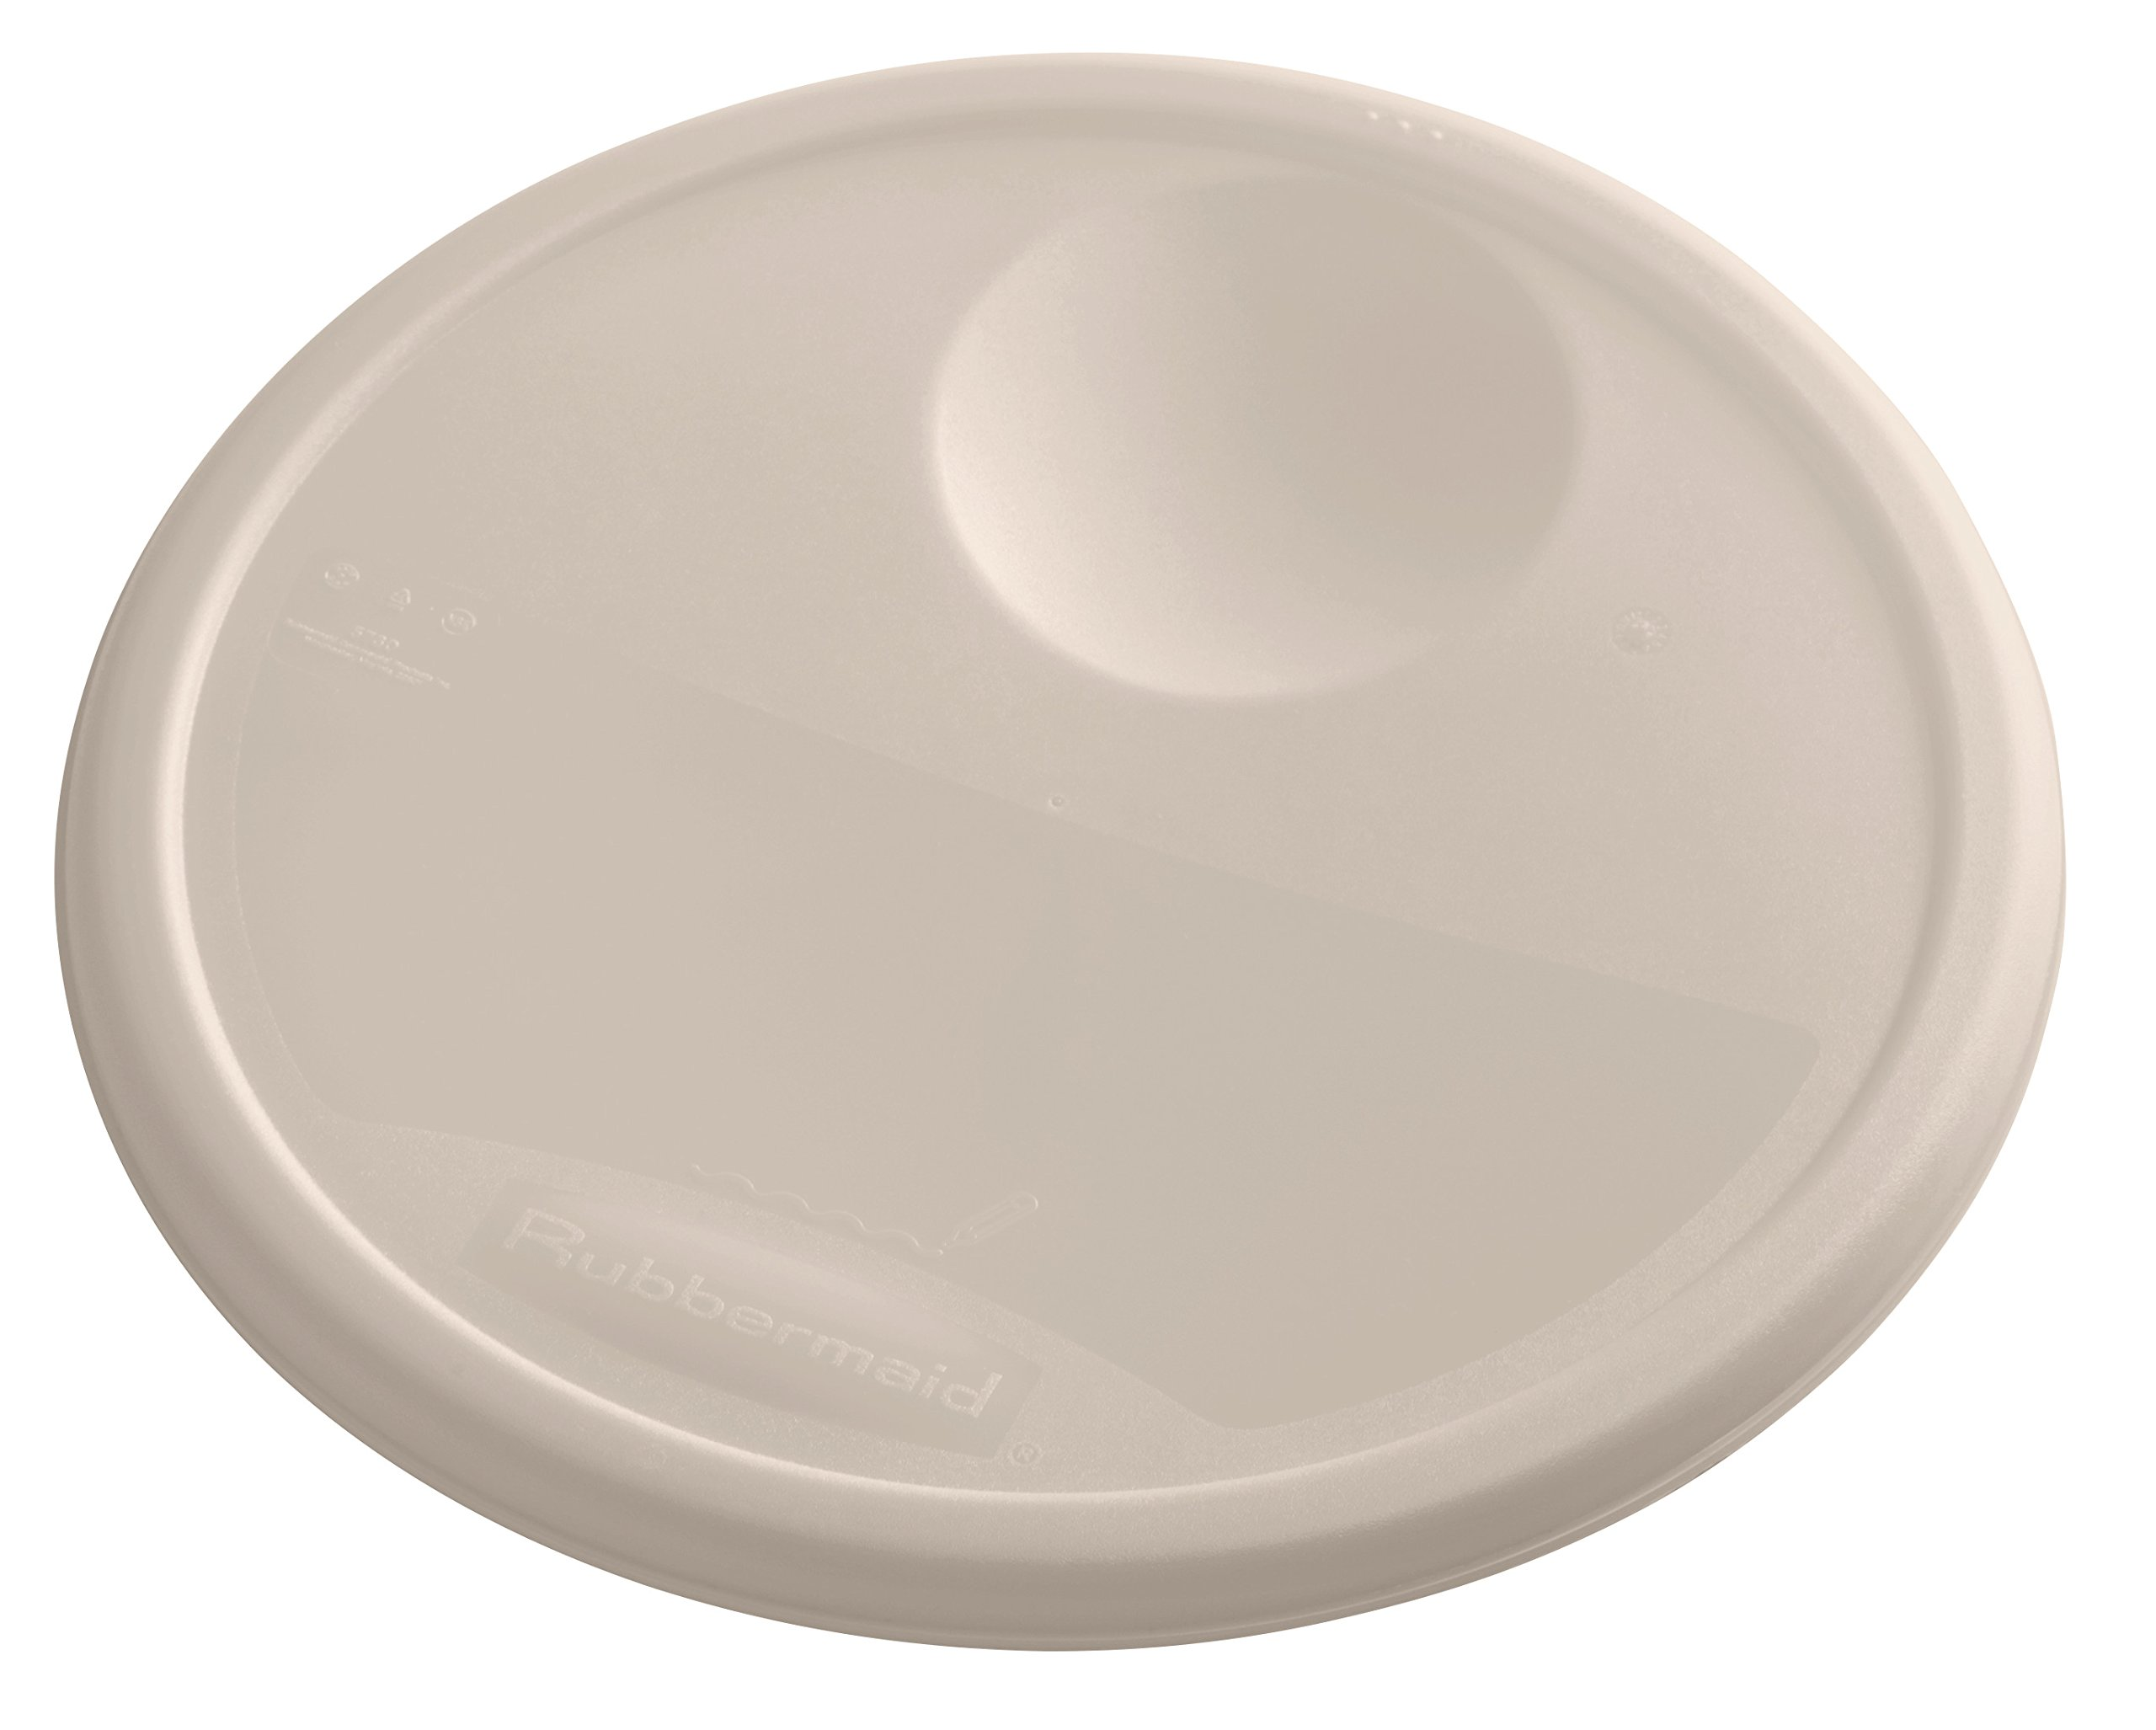 Rubbermaid Commercial Products 1980392 Plastic Food Storage Container Lid, Round, 12 Quart, Brown by Rubbermaid Commercial Products